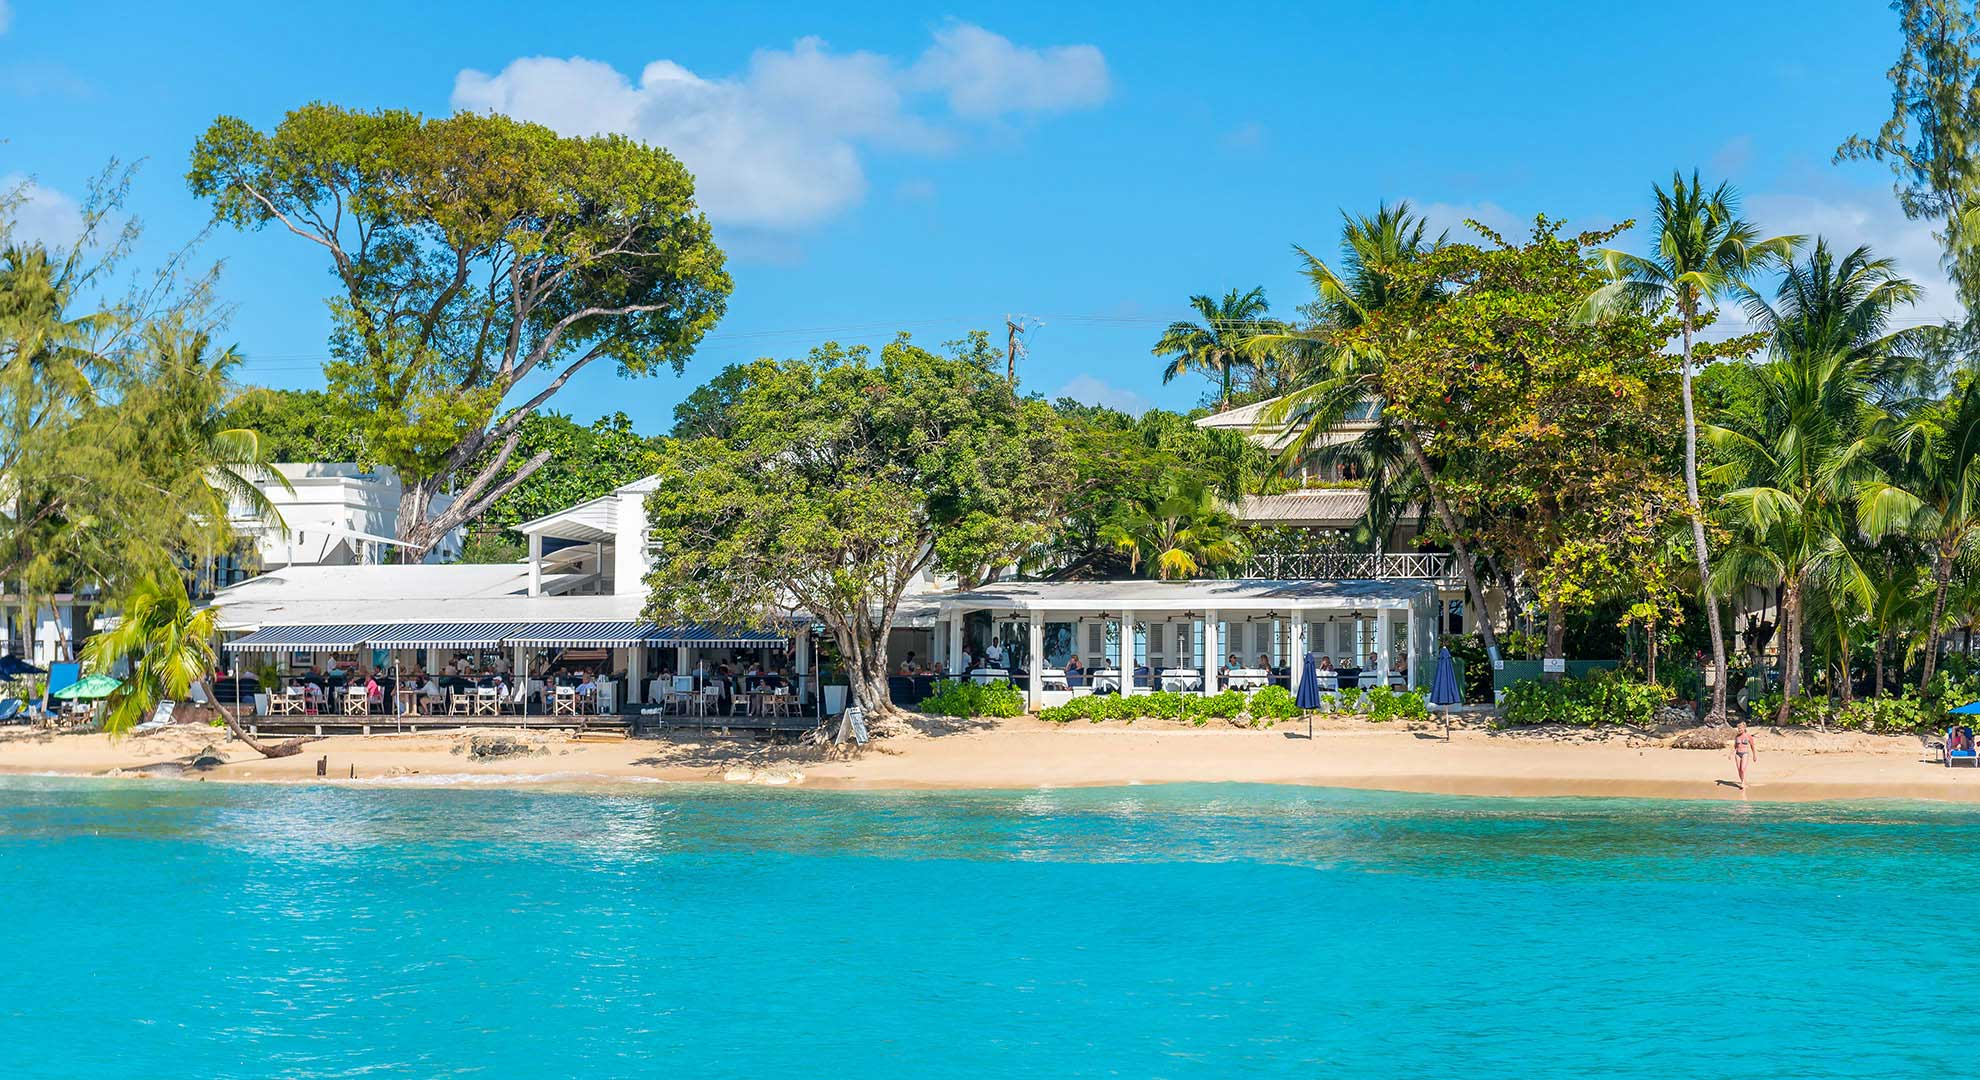 Home The Lone Star Hotel And Restaurant Barbados